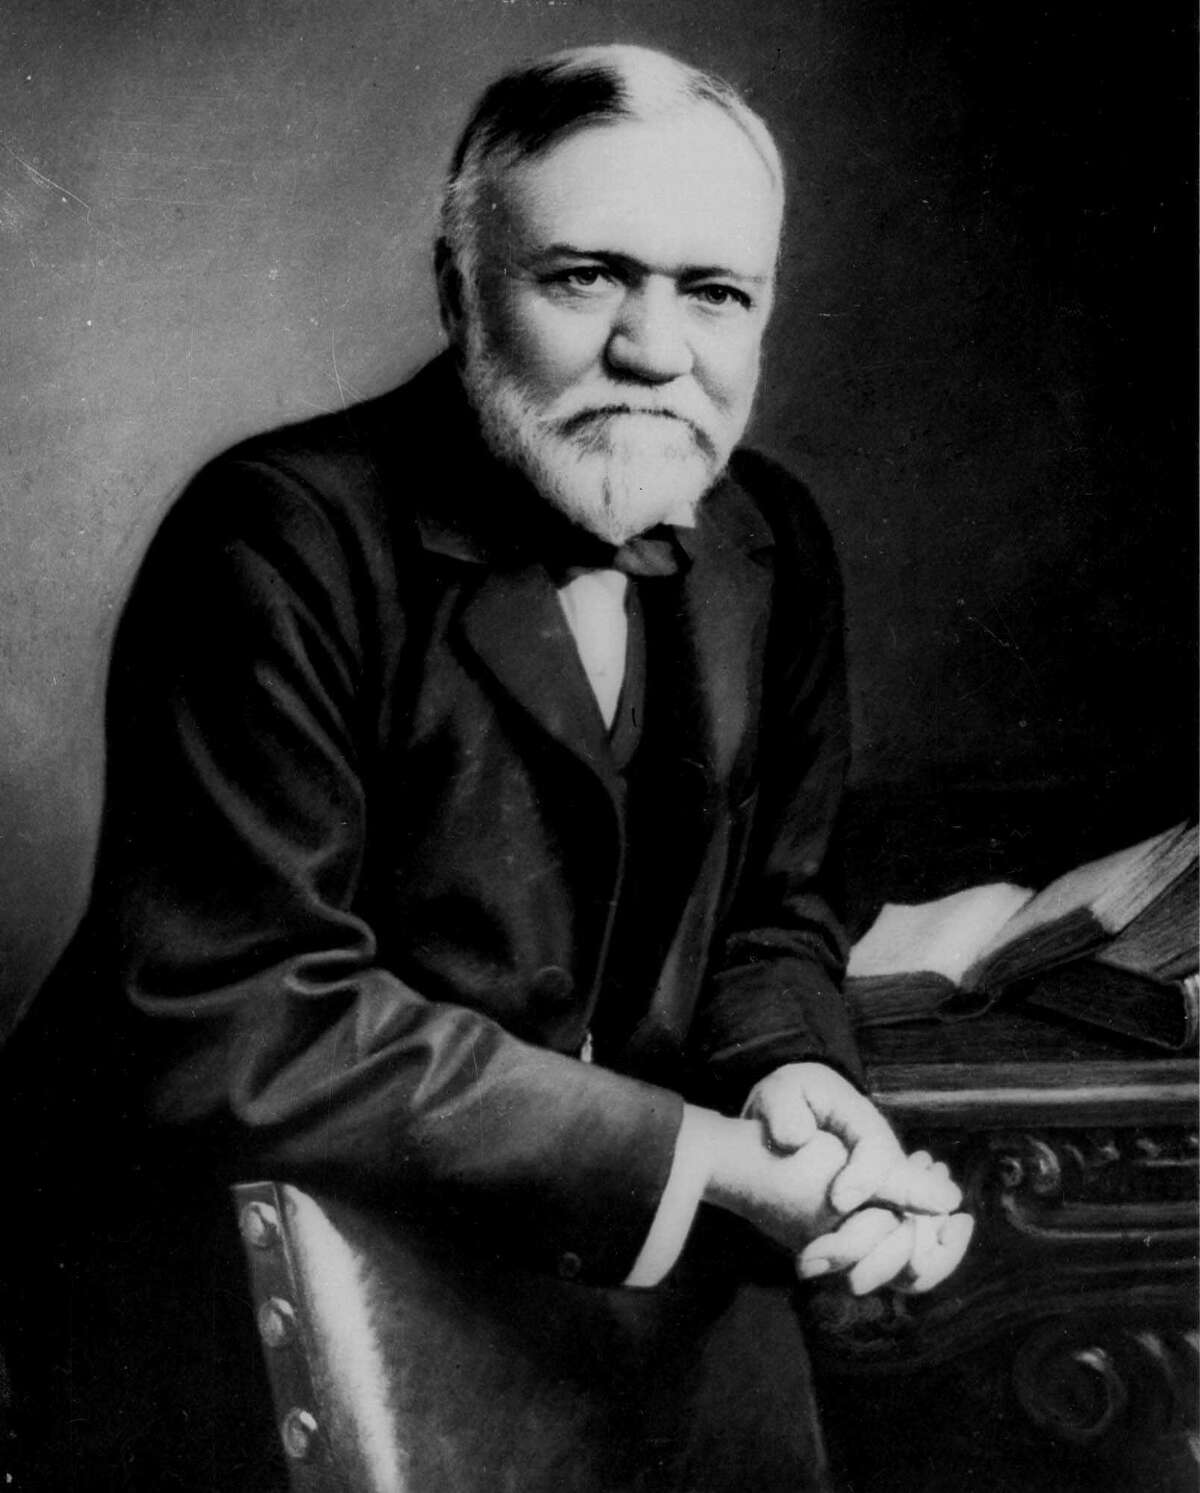 FILE--Steel magnate Andrew Carnegie, seen in this undated file photo, ranked second in an American Heritage magazine ranking of the 40 richest Americans of all time. The magazine calculated indivdual fortunes, adjusted for inflation, and ranked oil magnate John D. Rockefeller first at $190 billion. (AP Photo/File)